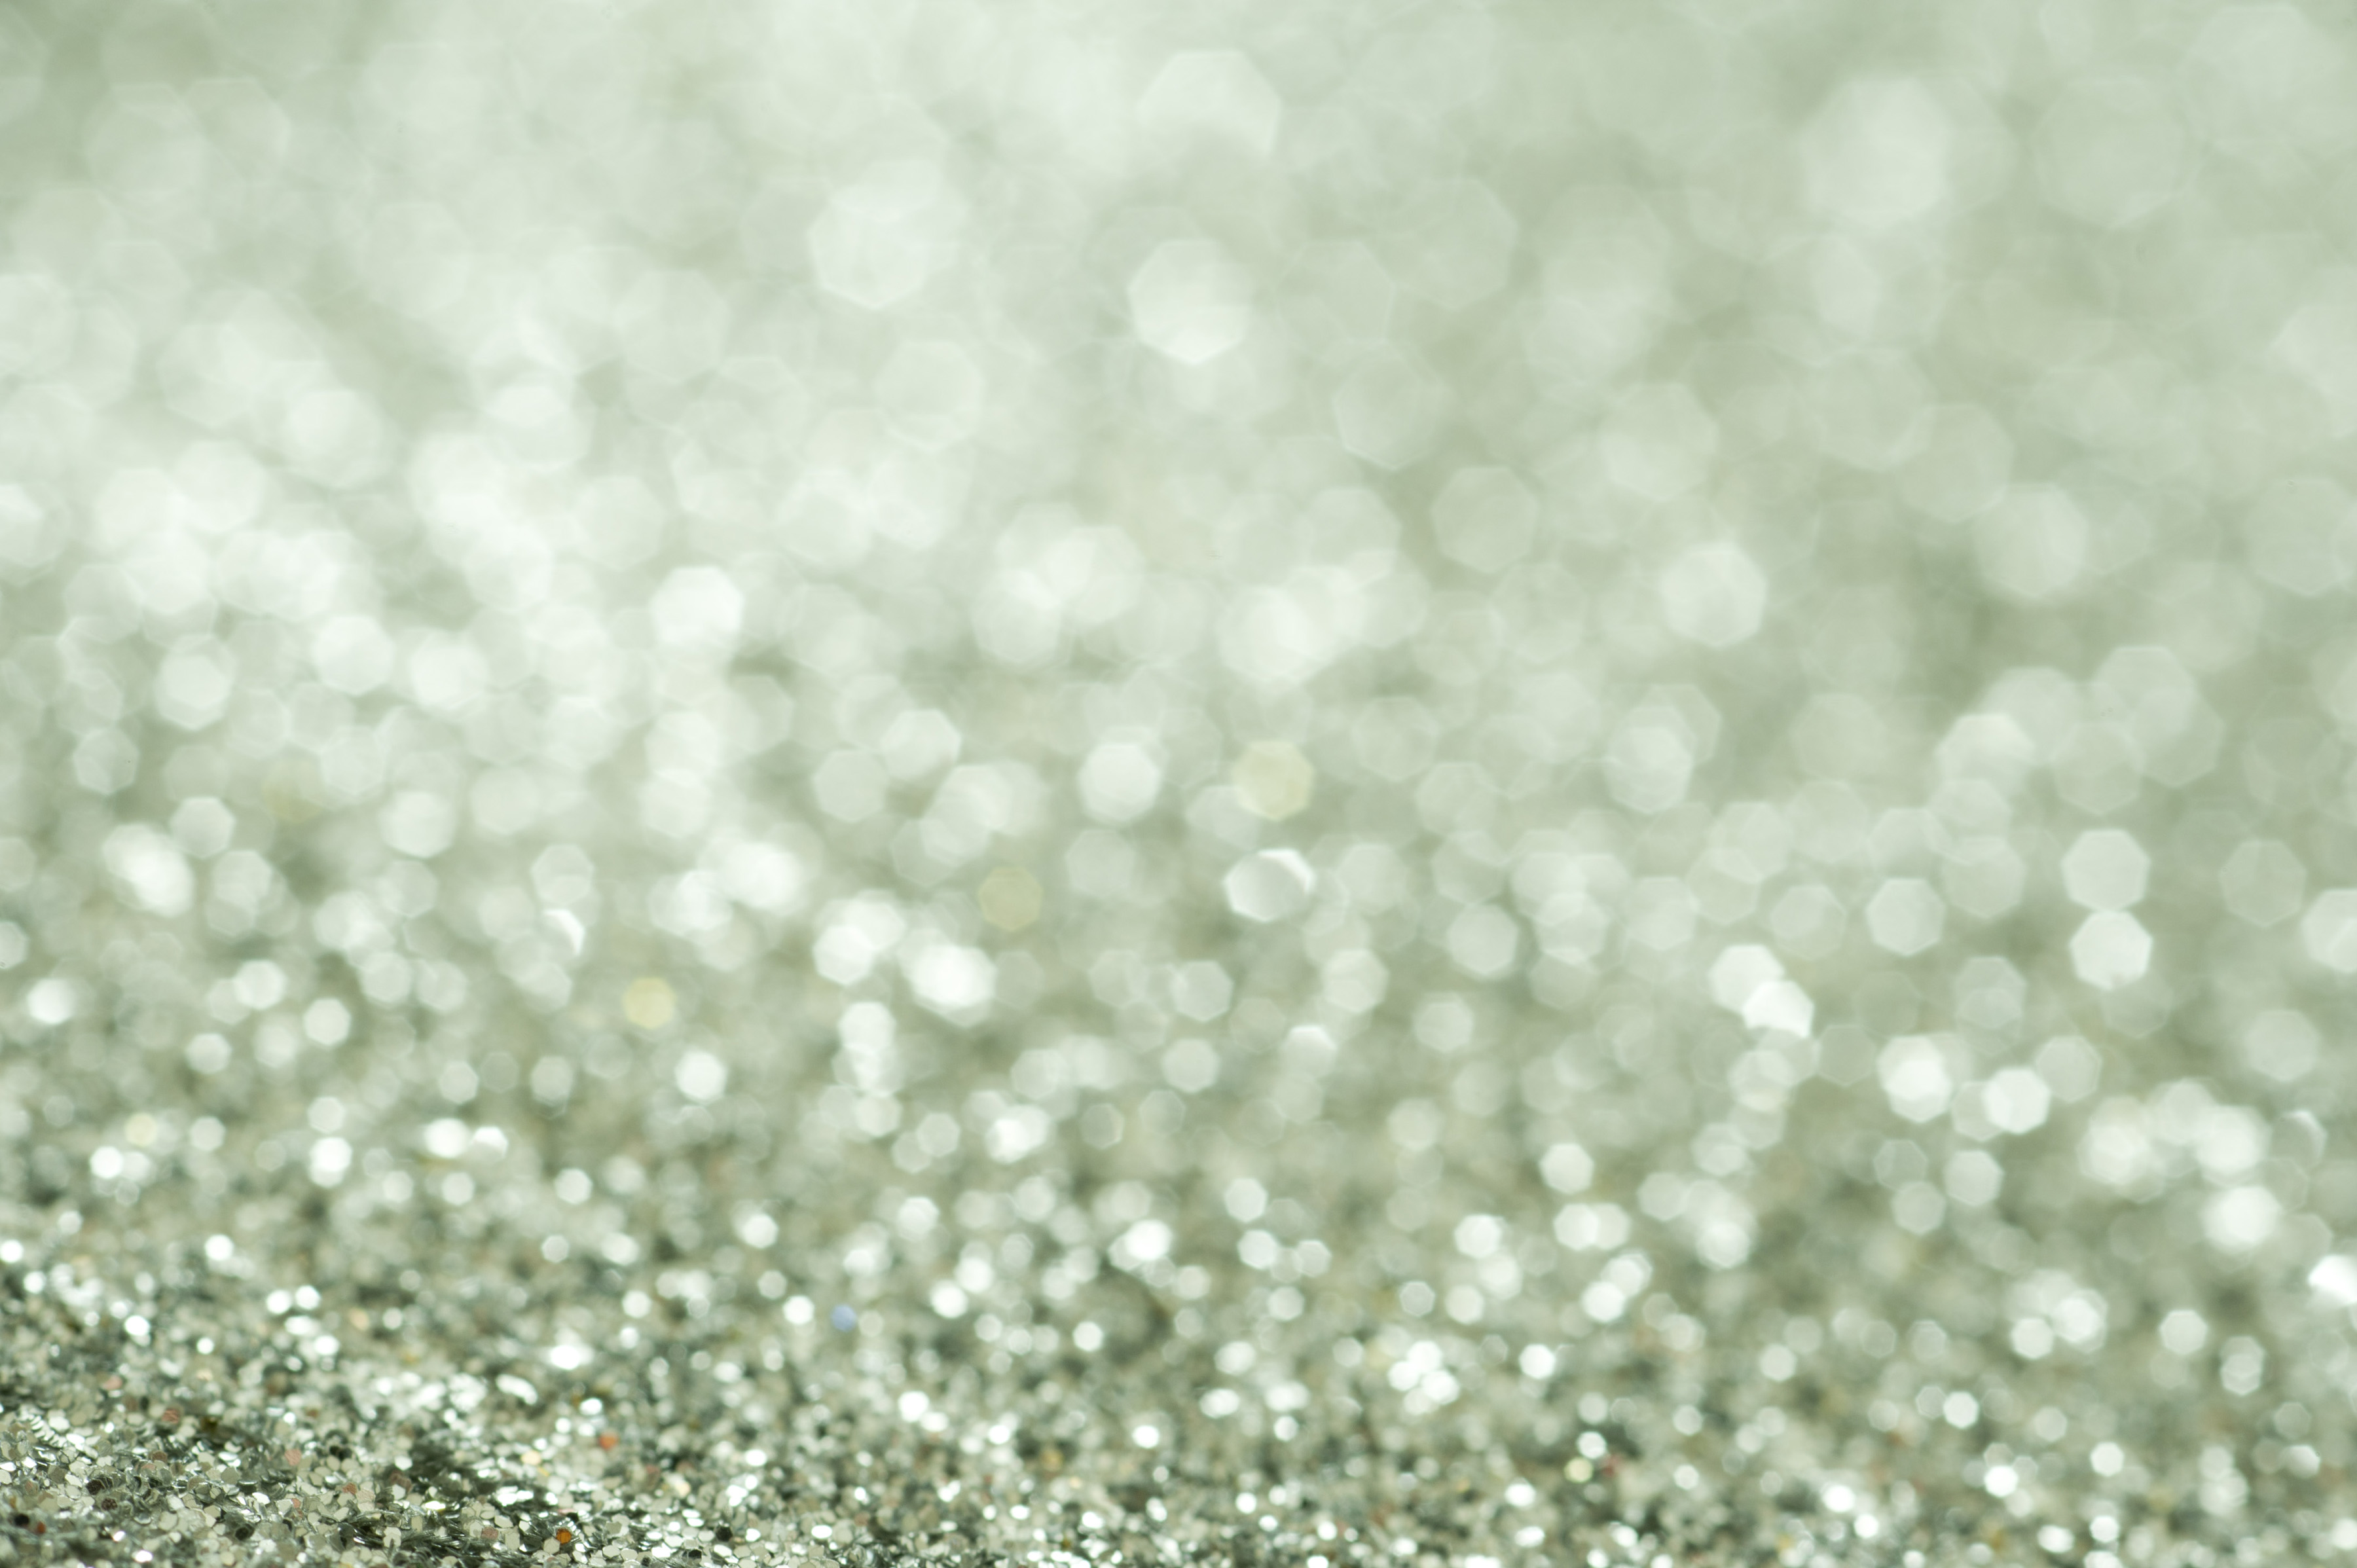 Green glitter background texture with shallow DOF and copy space for your Christmas or festive greeting, full frame